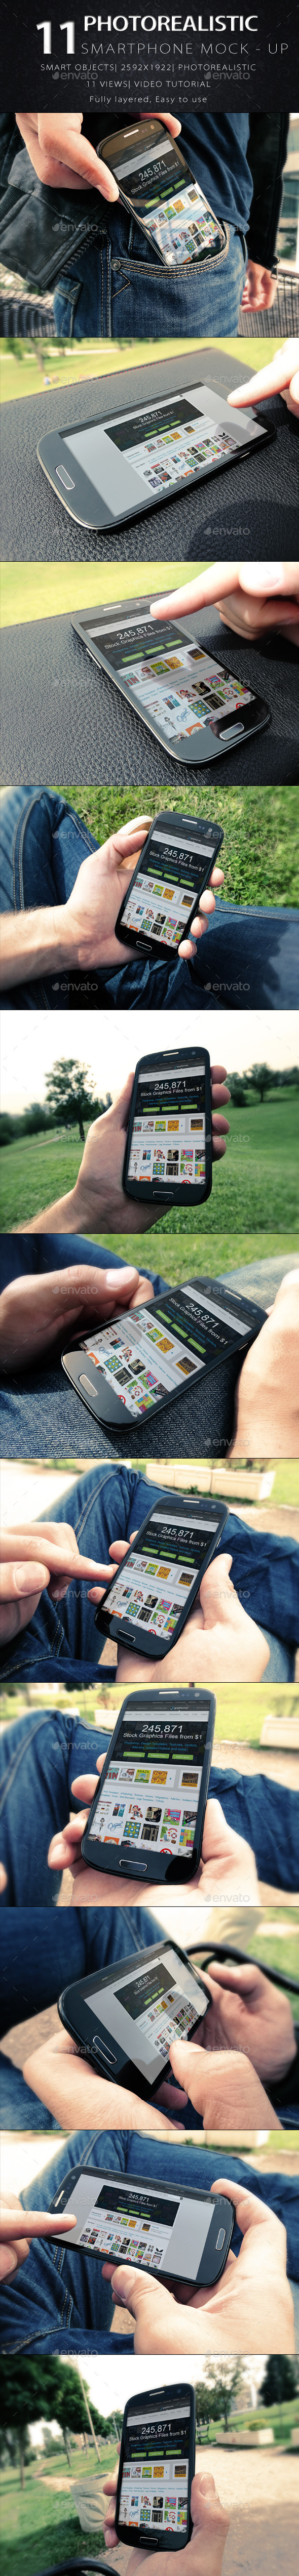 11 Phone Mock Ups - Mobile Displays